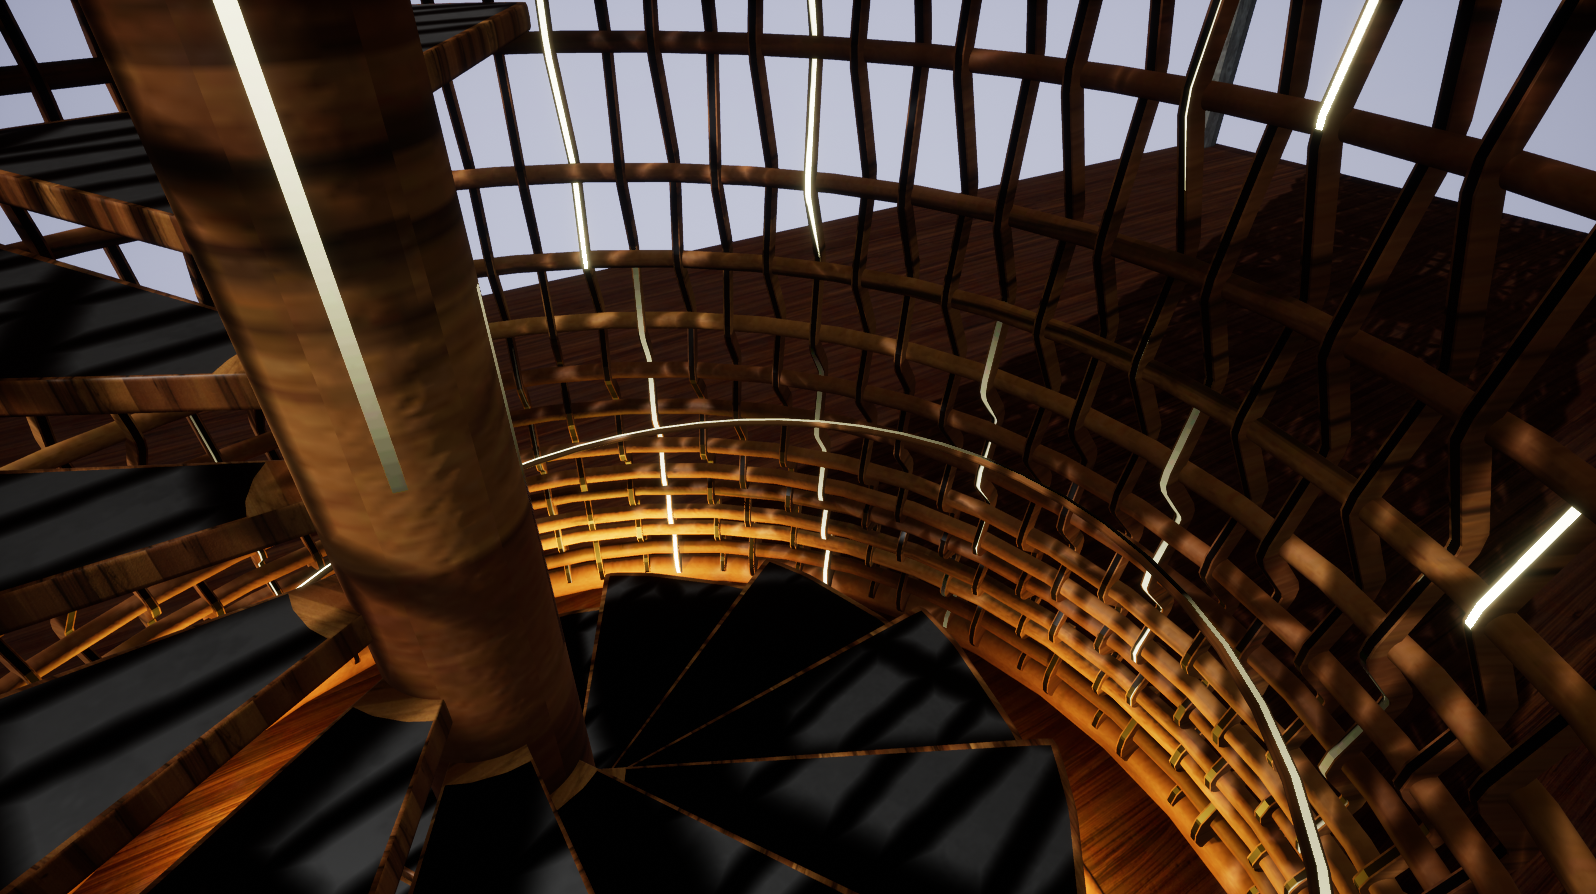 Stairs_Capture_02